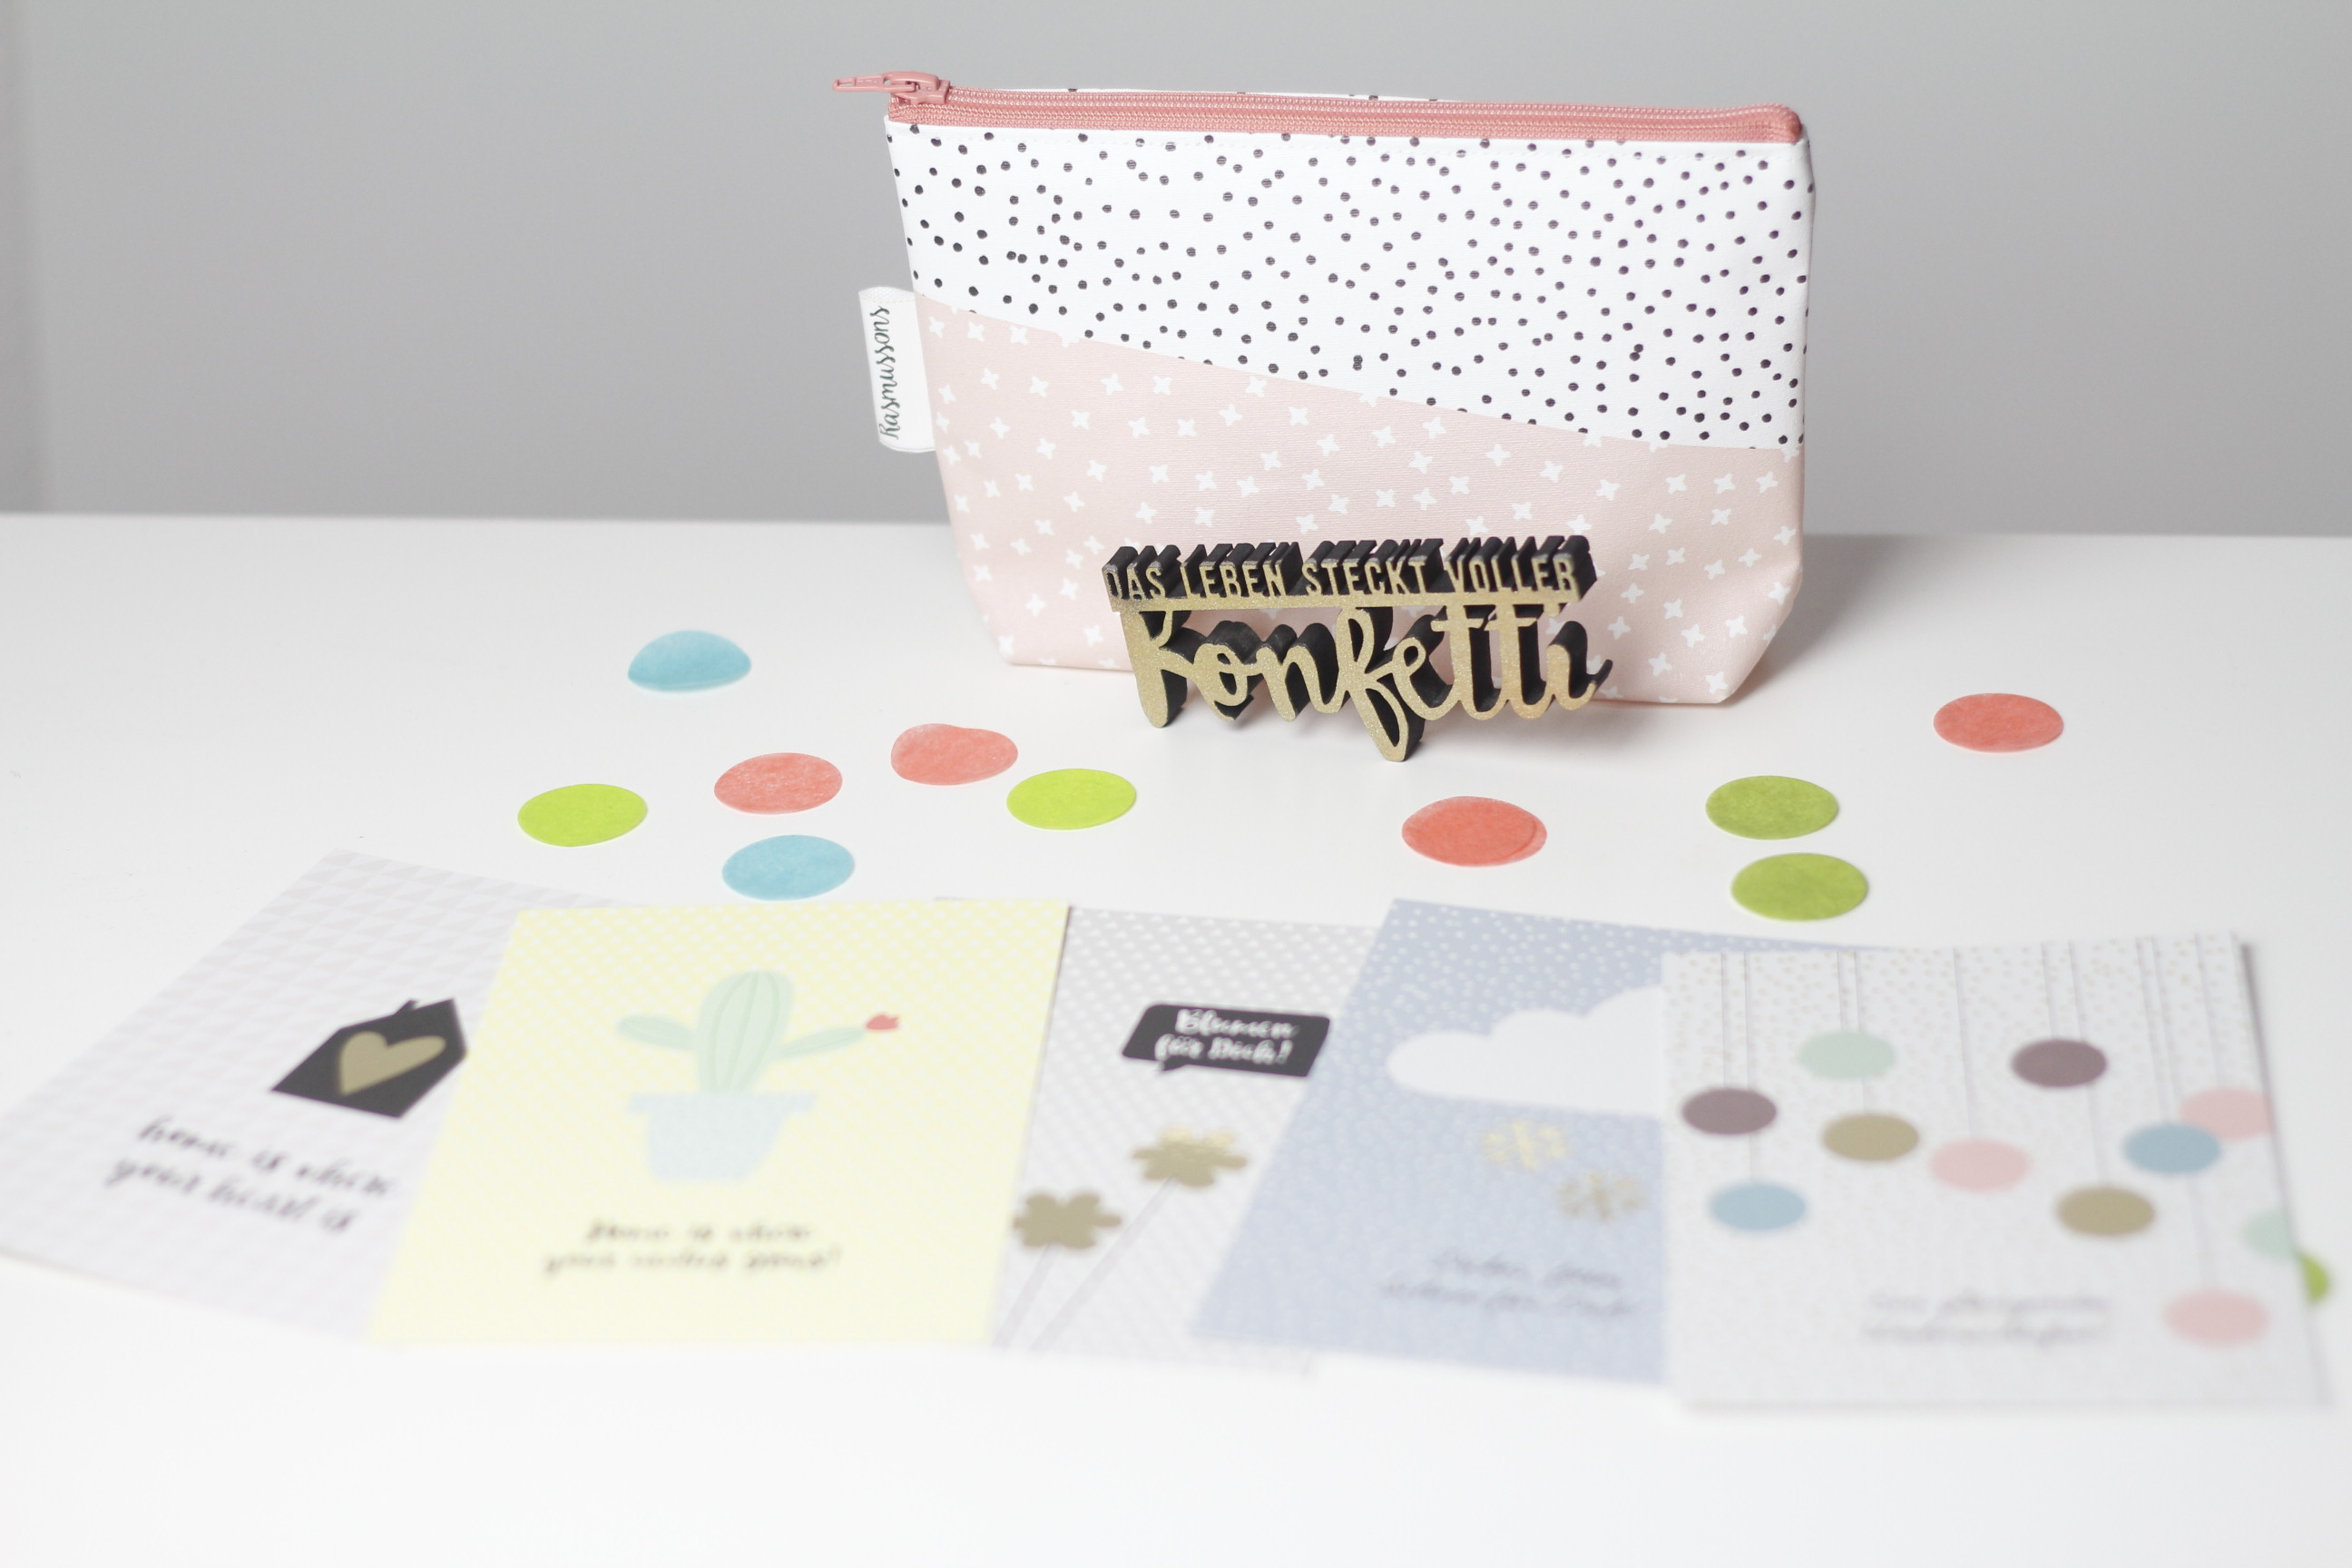 Rasmussons, Papergoods and Gifts